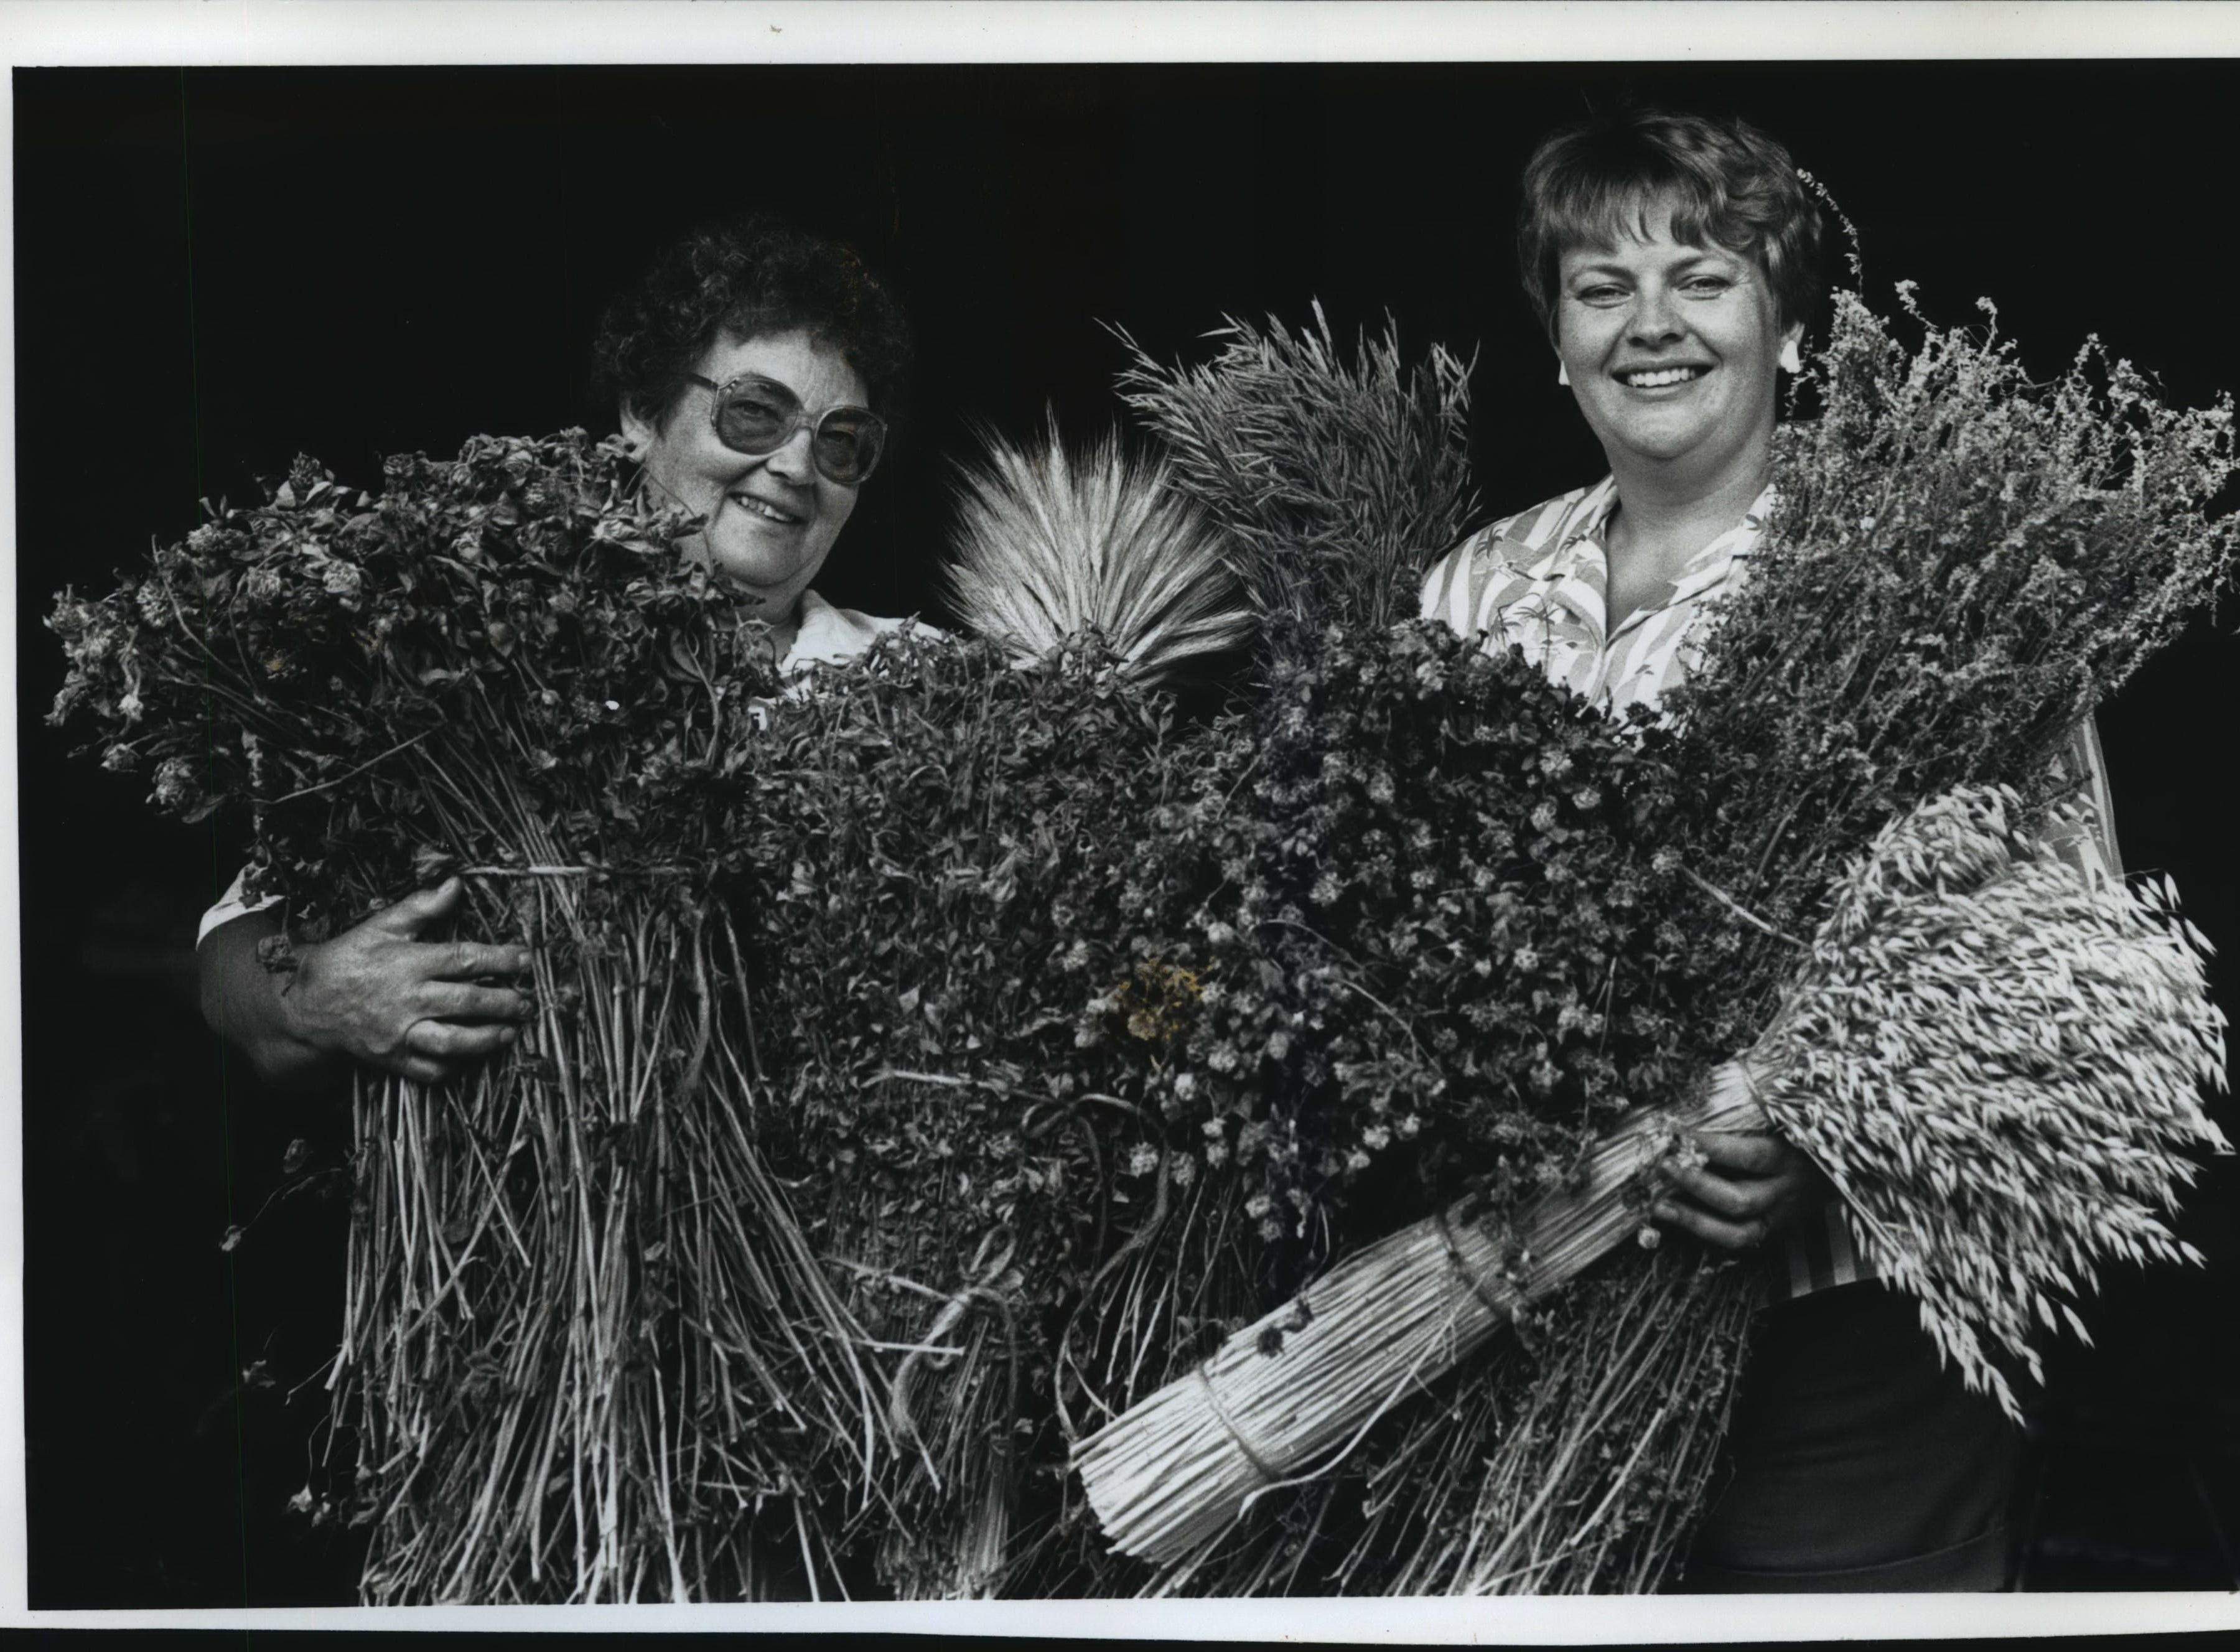 Evelyn Herther of Jackson and daughter Ruth Knetzger of Hubertus will enter scores of entries in the Washington County fair. Among them are dried plants that they bundle in bunches